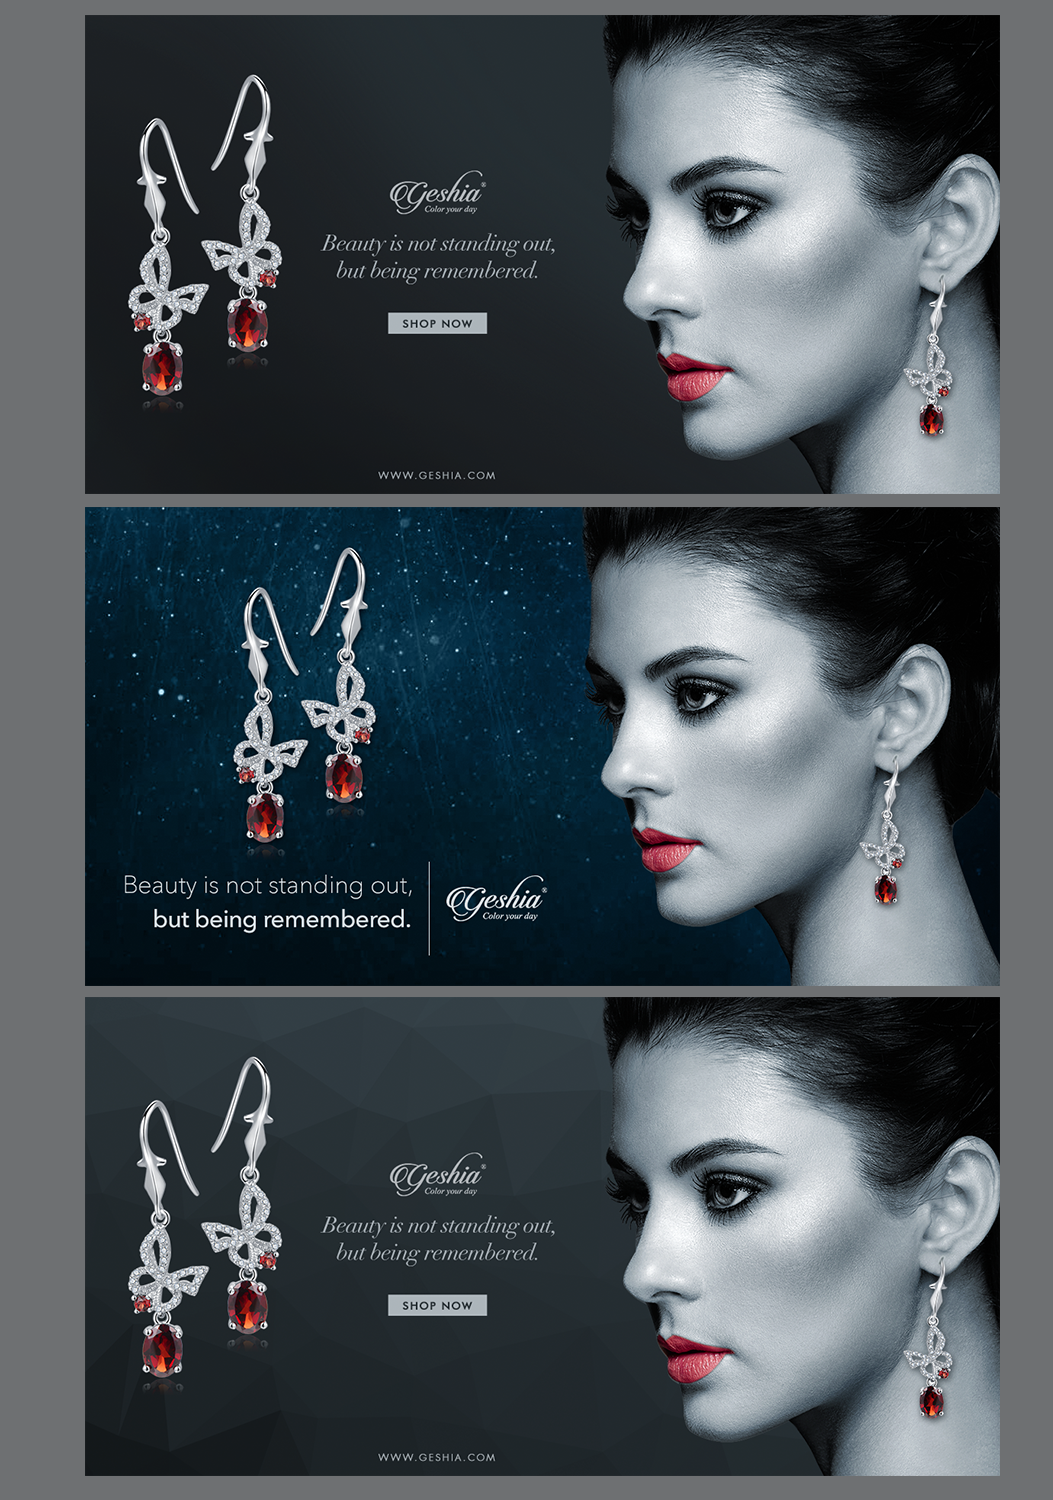 Jewelry banner ad design for geshia group inc by ravi k5 for Ad designs